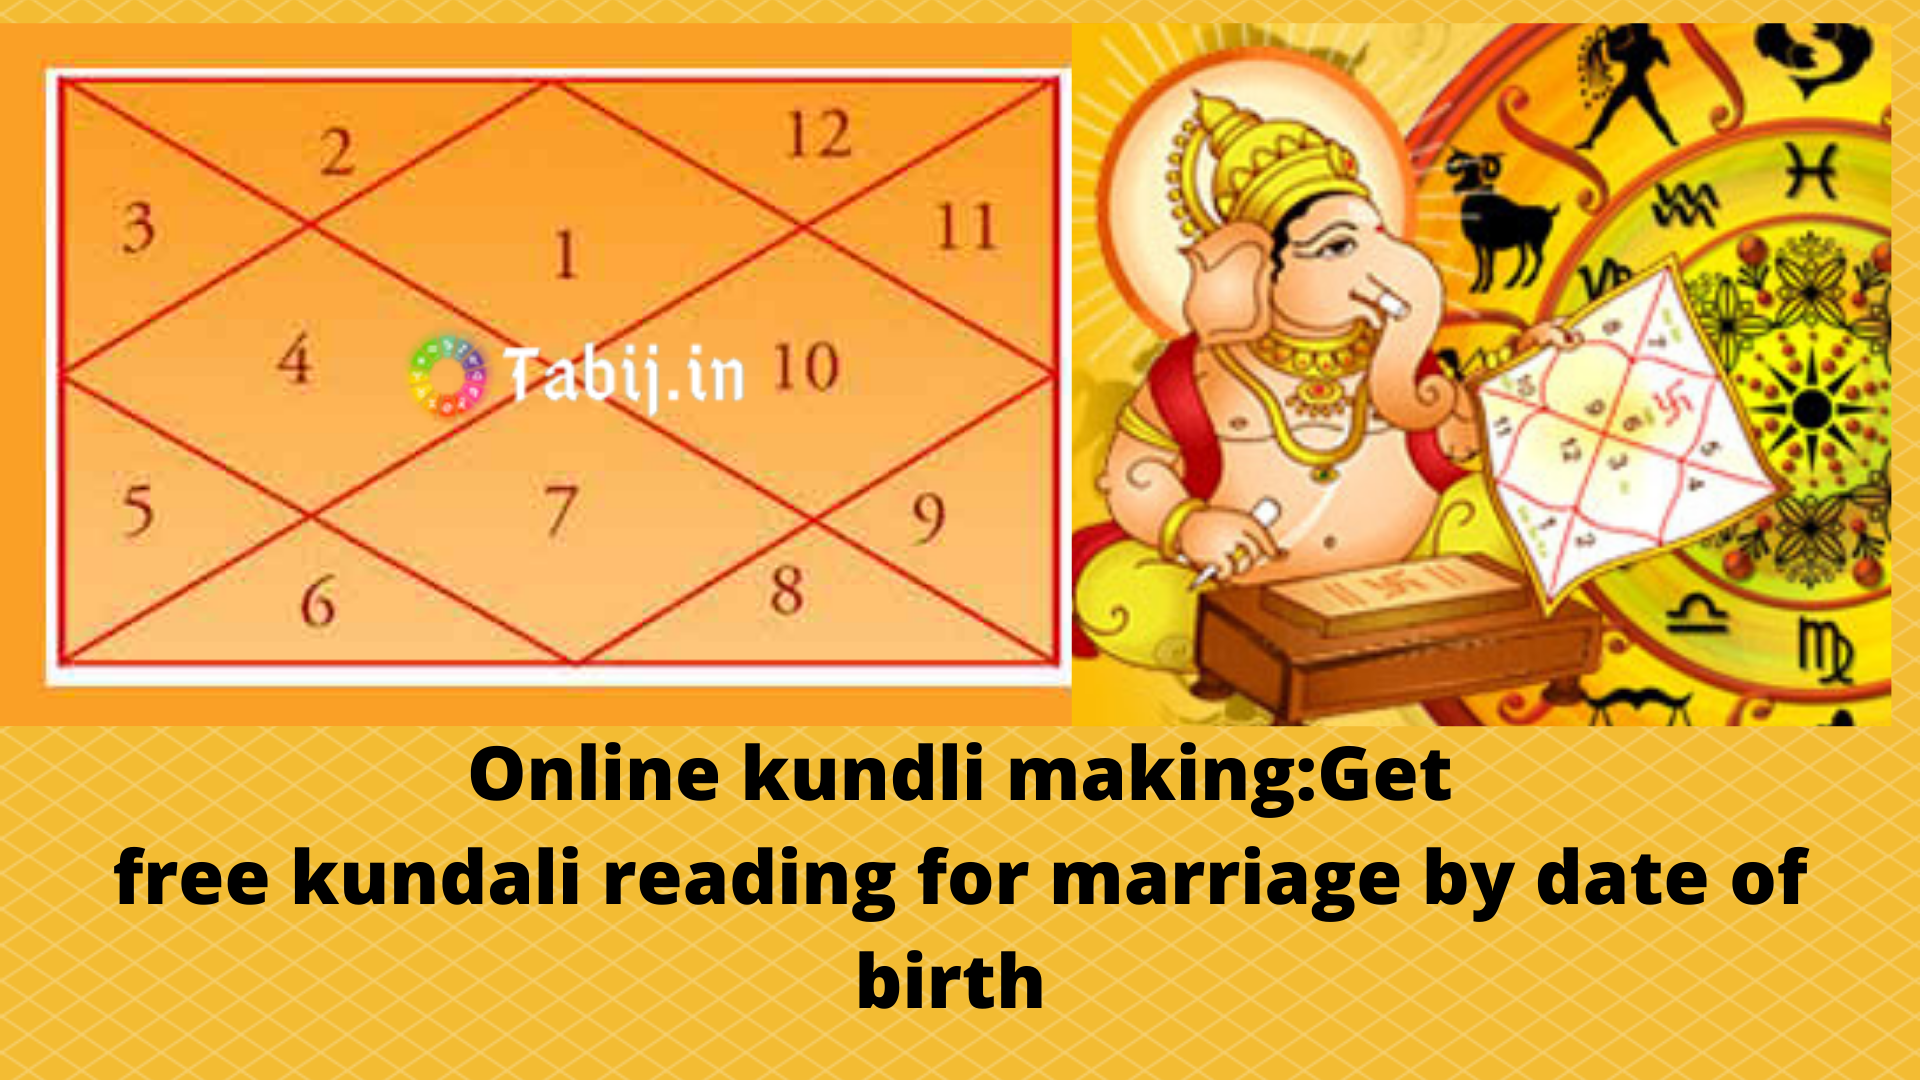 online-kundli-making-get-free-kundali-reading-for-marriage-by-date-of-birth